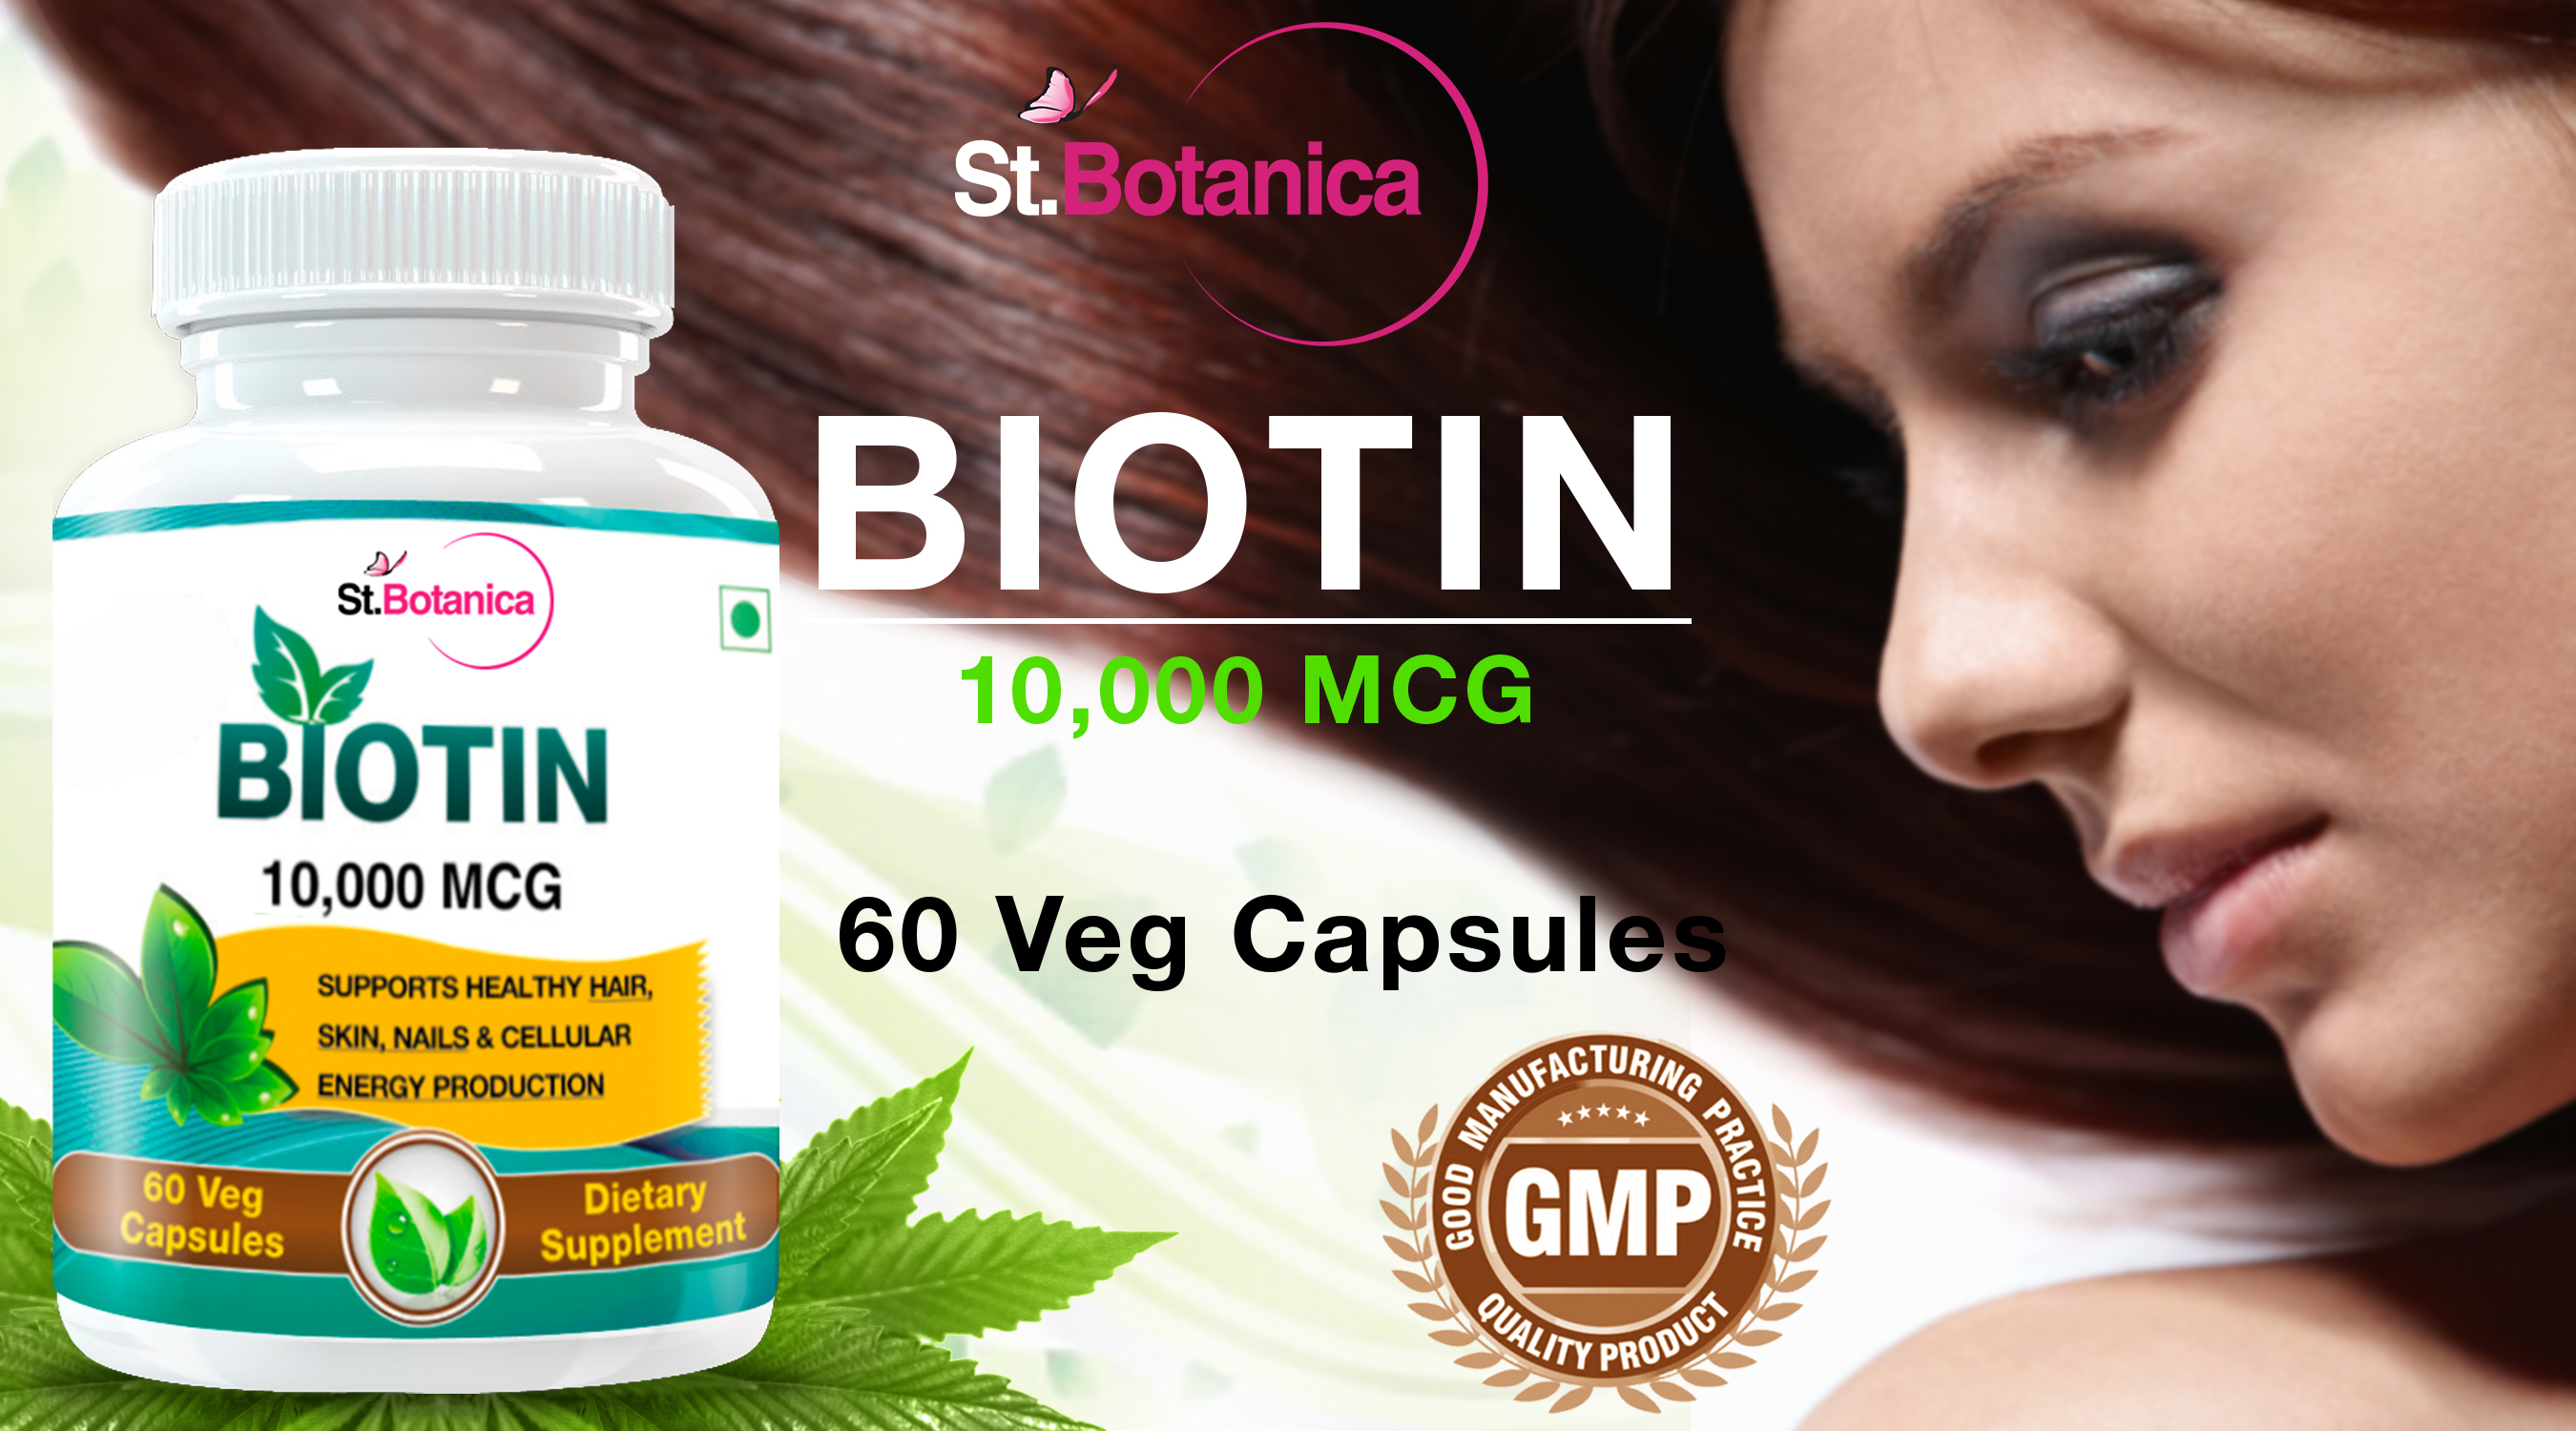 Biotin capsules for hair, skin and nails